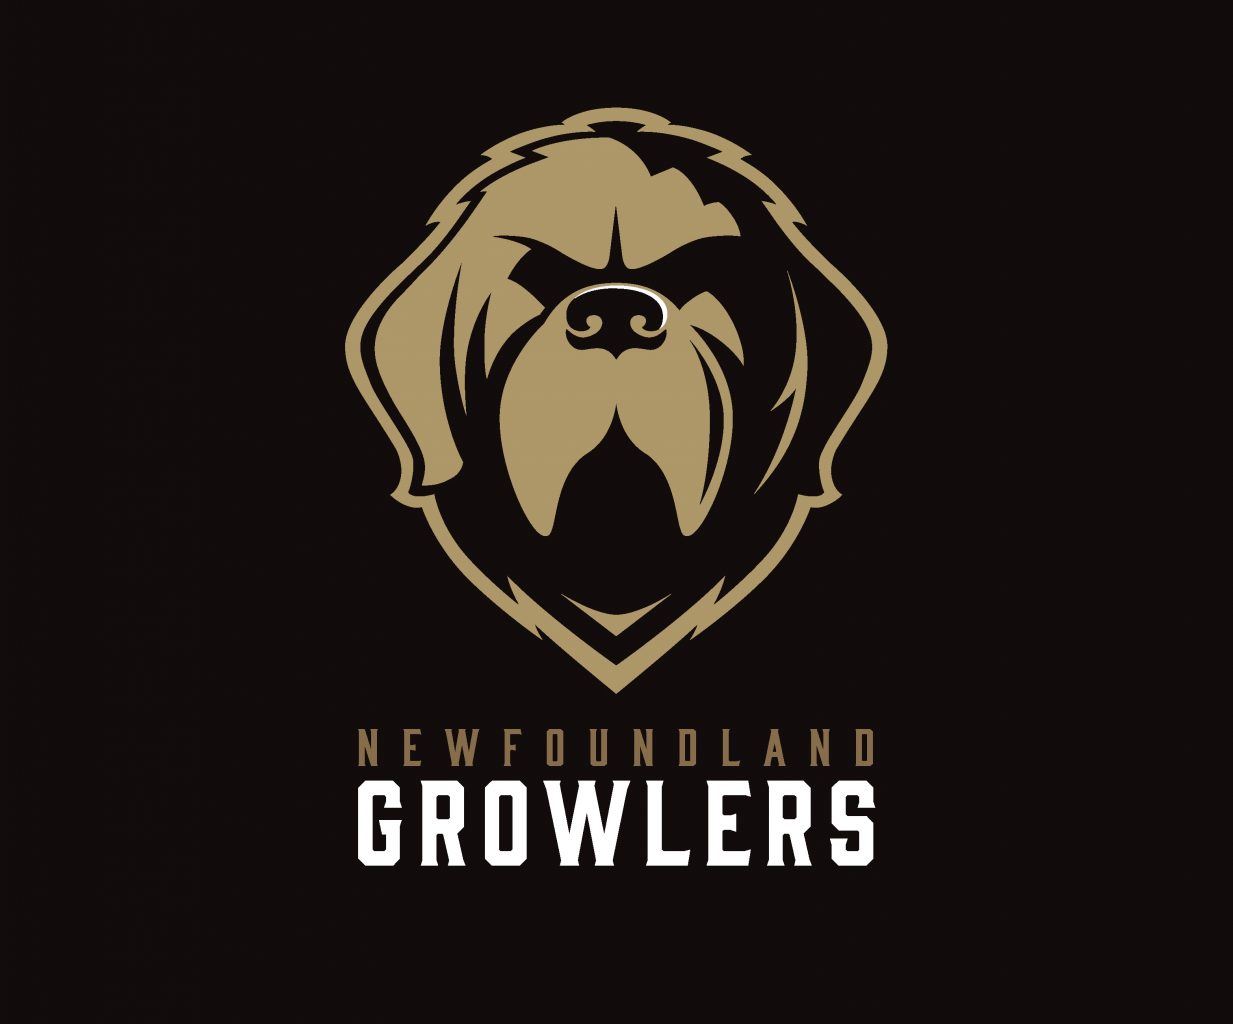 NL GROWLERS VS. WORCESTER RAILERS